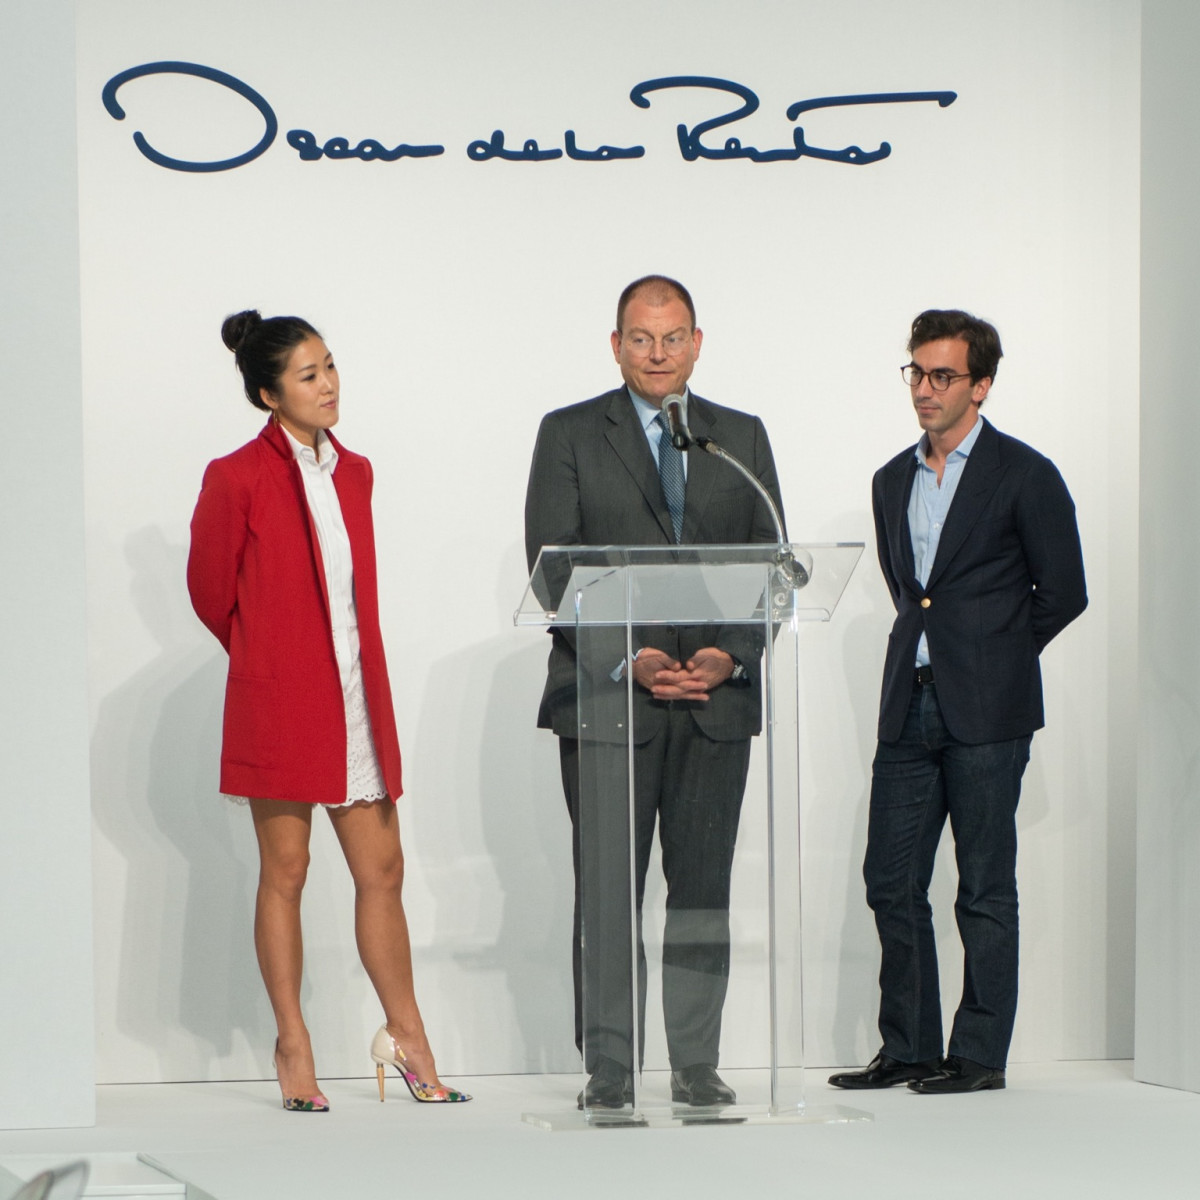 Laura Kim, Alex Bolen, Fernando Garcia at Oscar de la Renta fashion show at MFAH